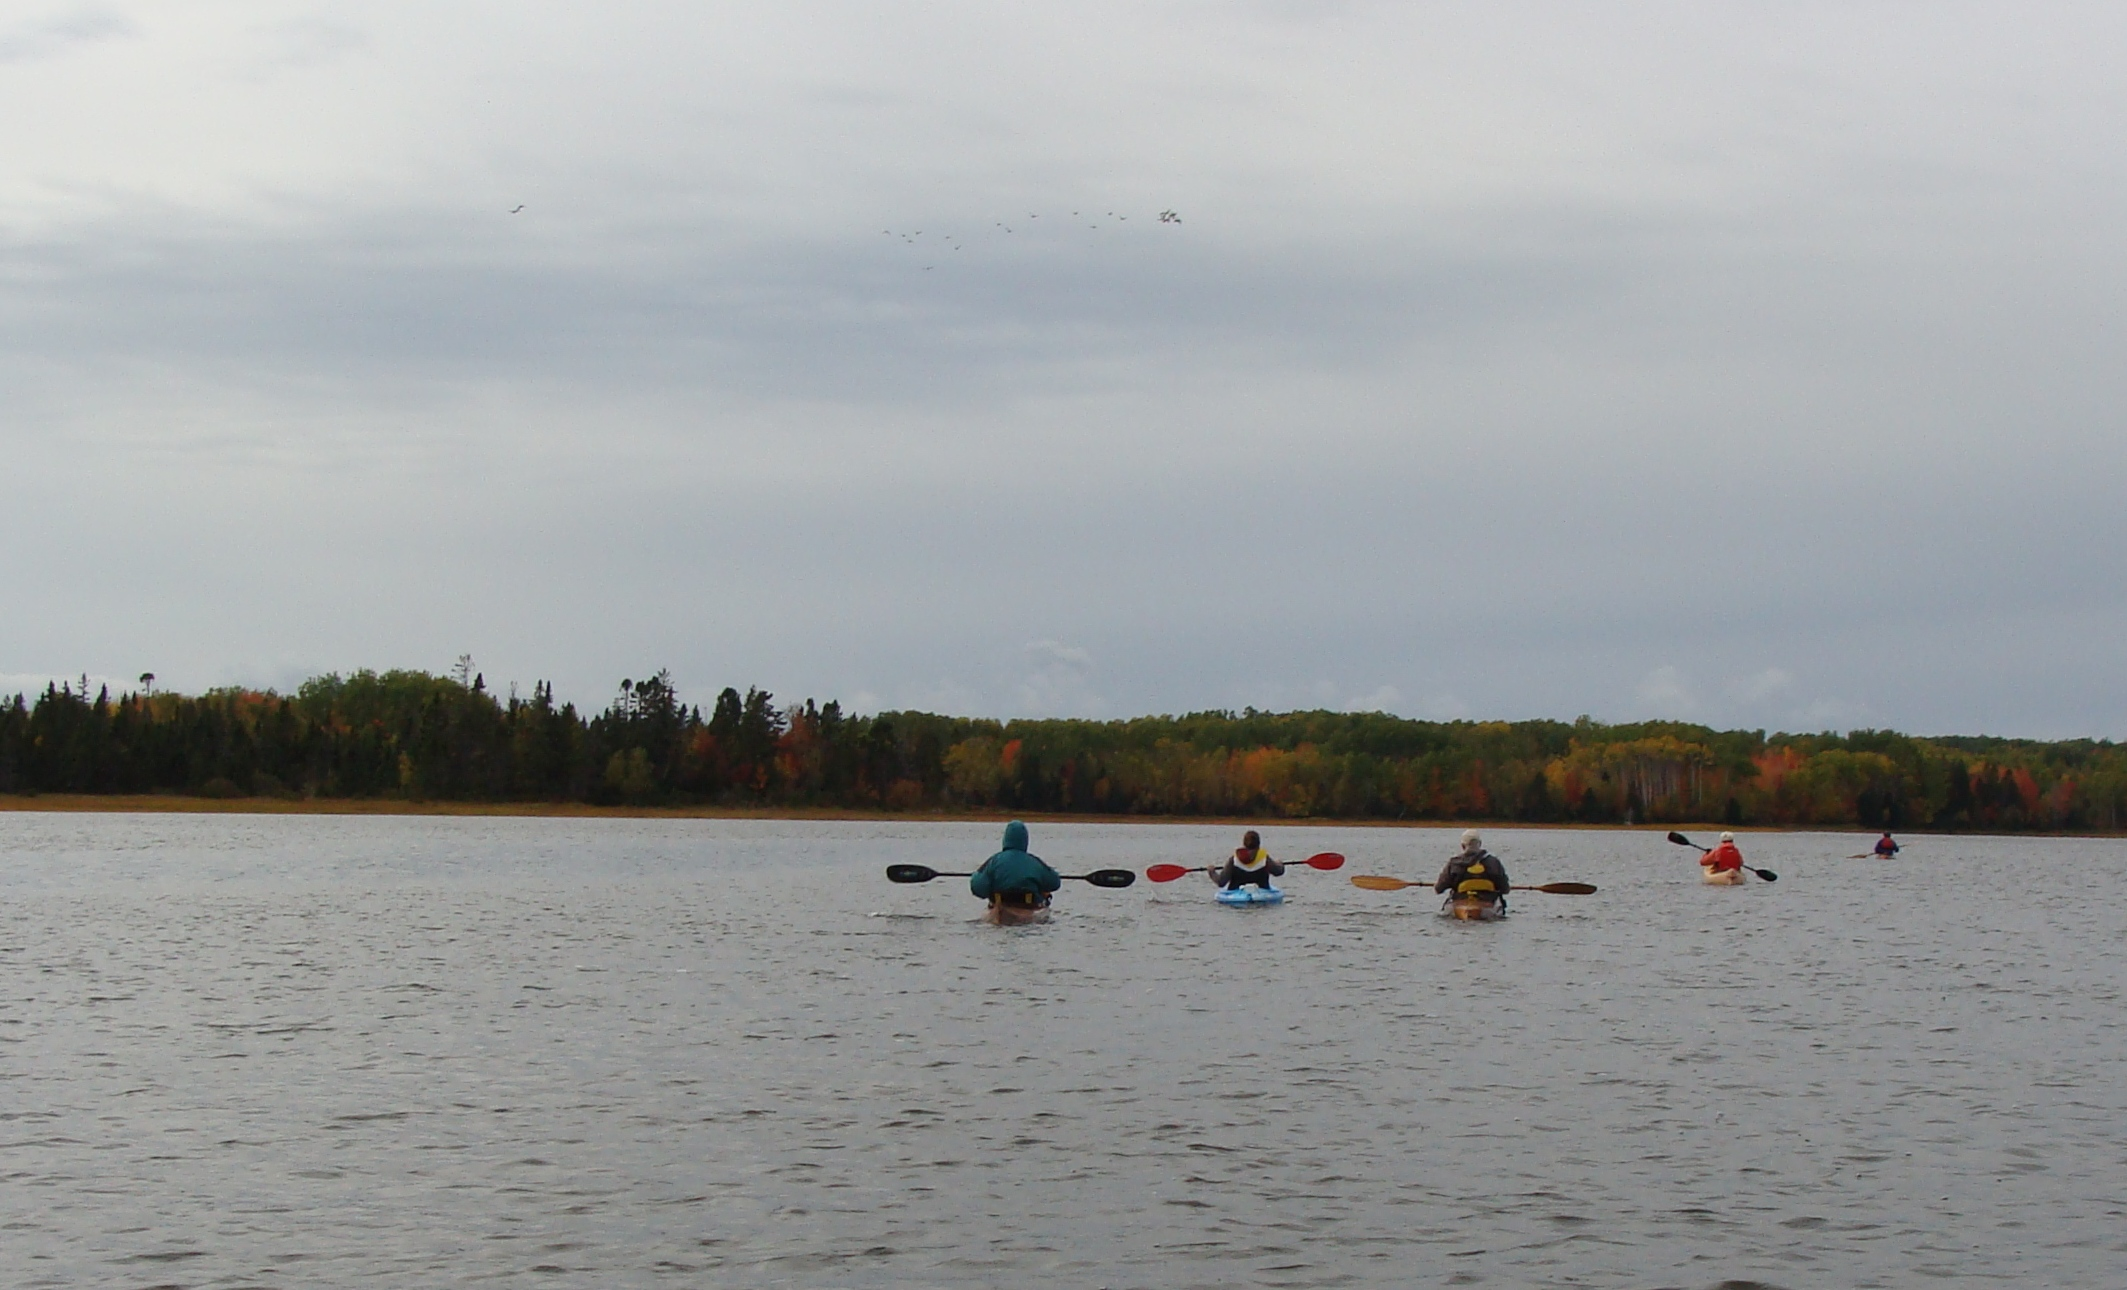 2018 10 - The kayaks head out.jpg